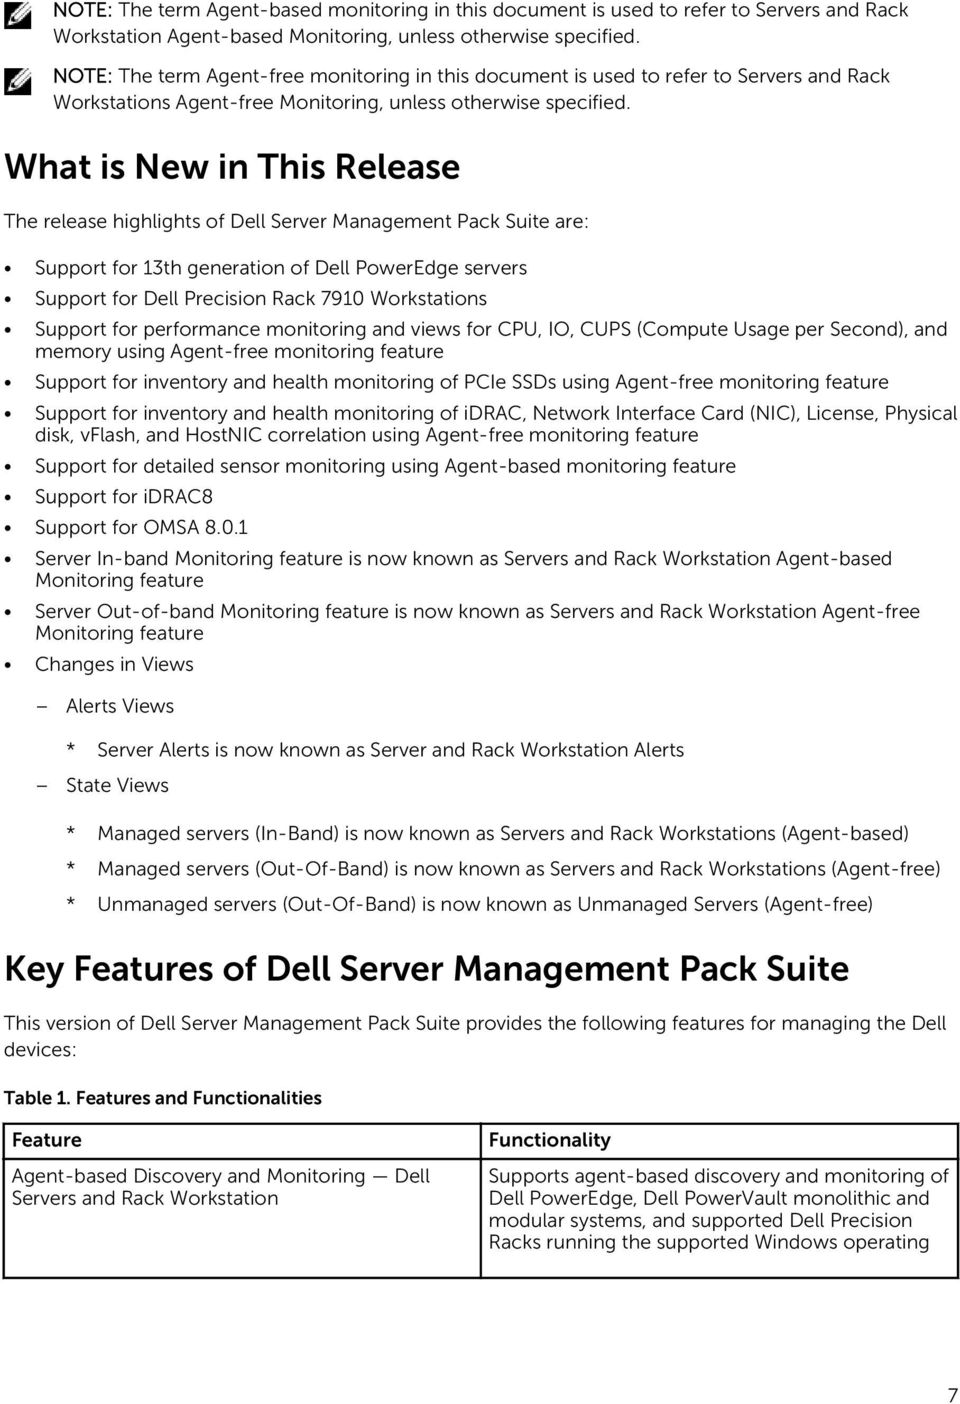 What is New in This Release The release highlights of Dell Server Management Pack Suite are: Support for 13th generation of Dell PowerEdge servers Support for Dell Precision Rack 7910 Workstations